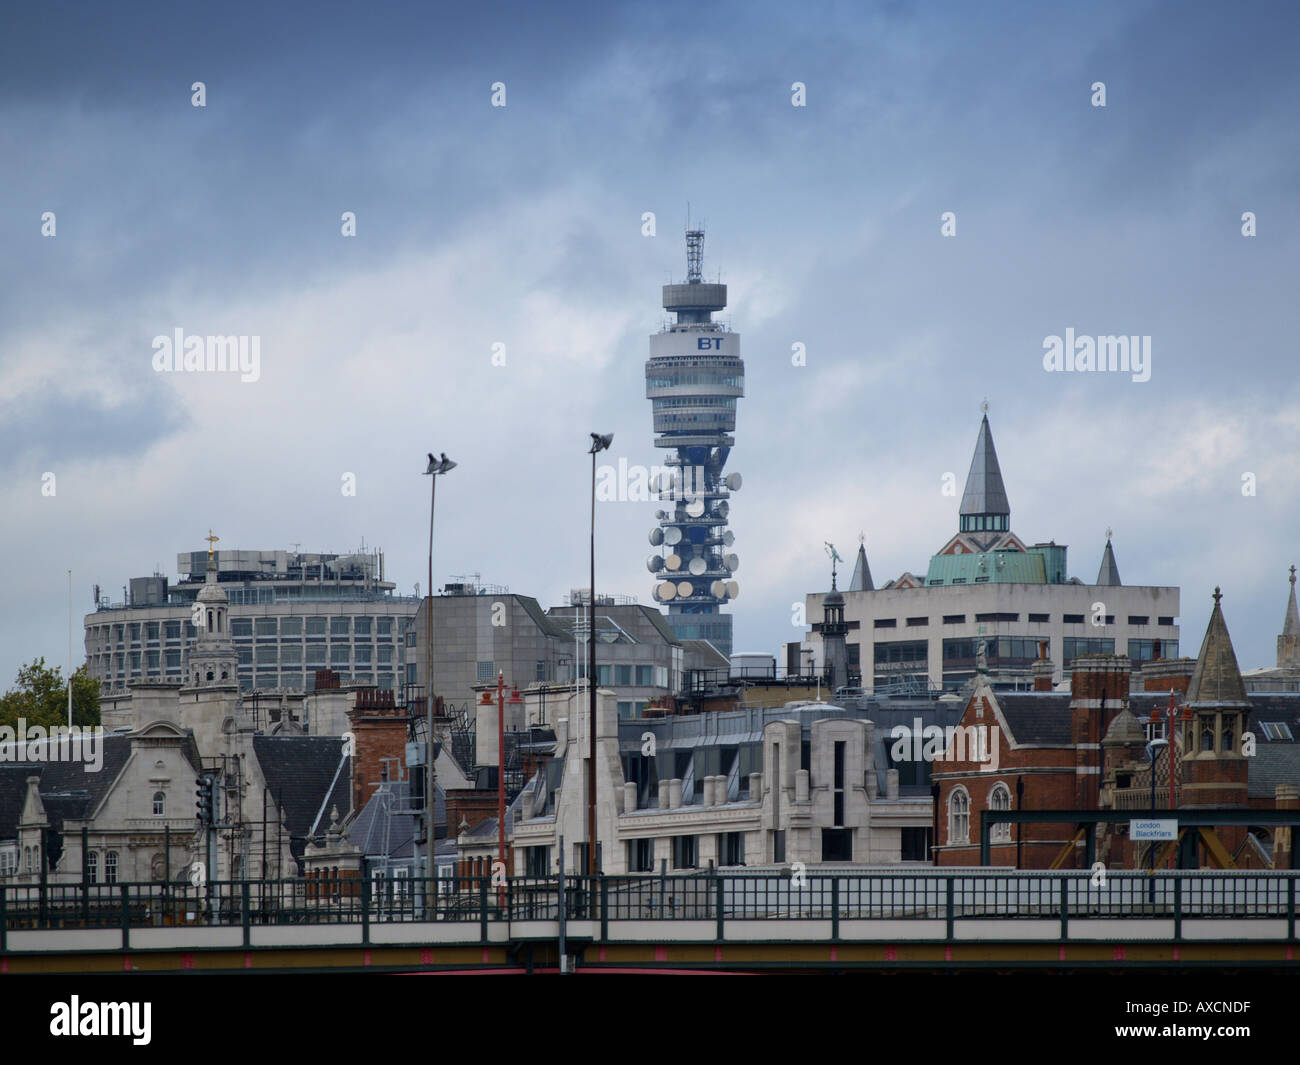 The BT British Telecom tower is a famous landmark that many people use for orientation in the city London UK - Stock Image